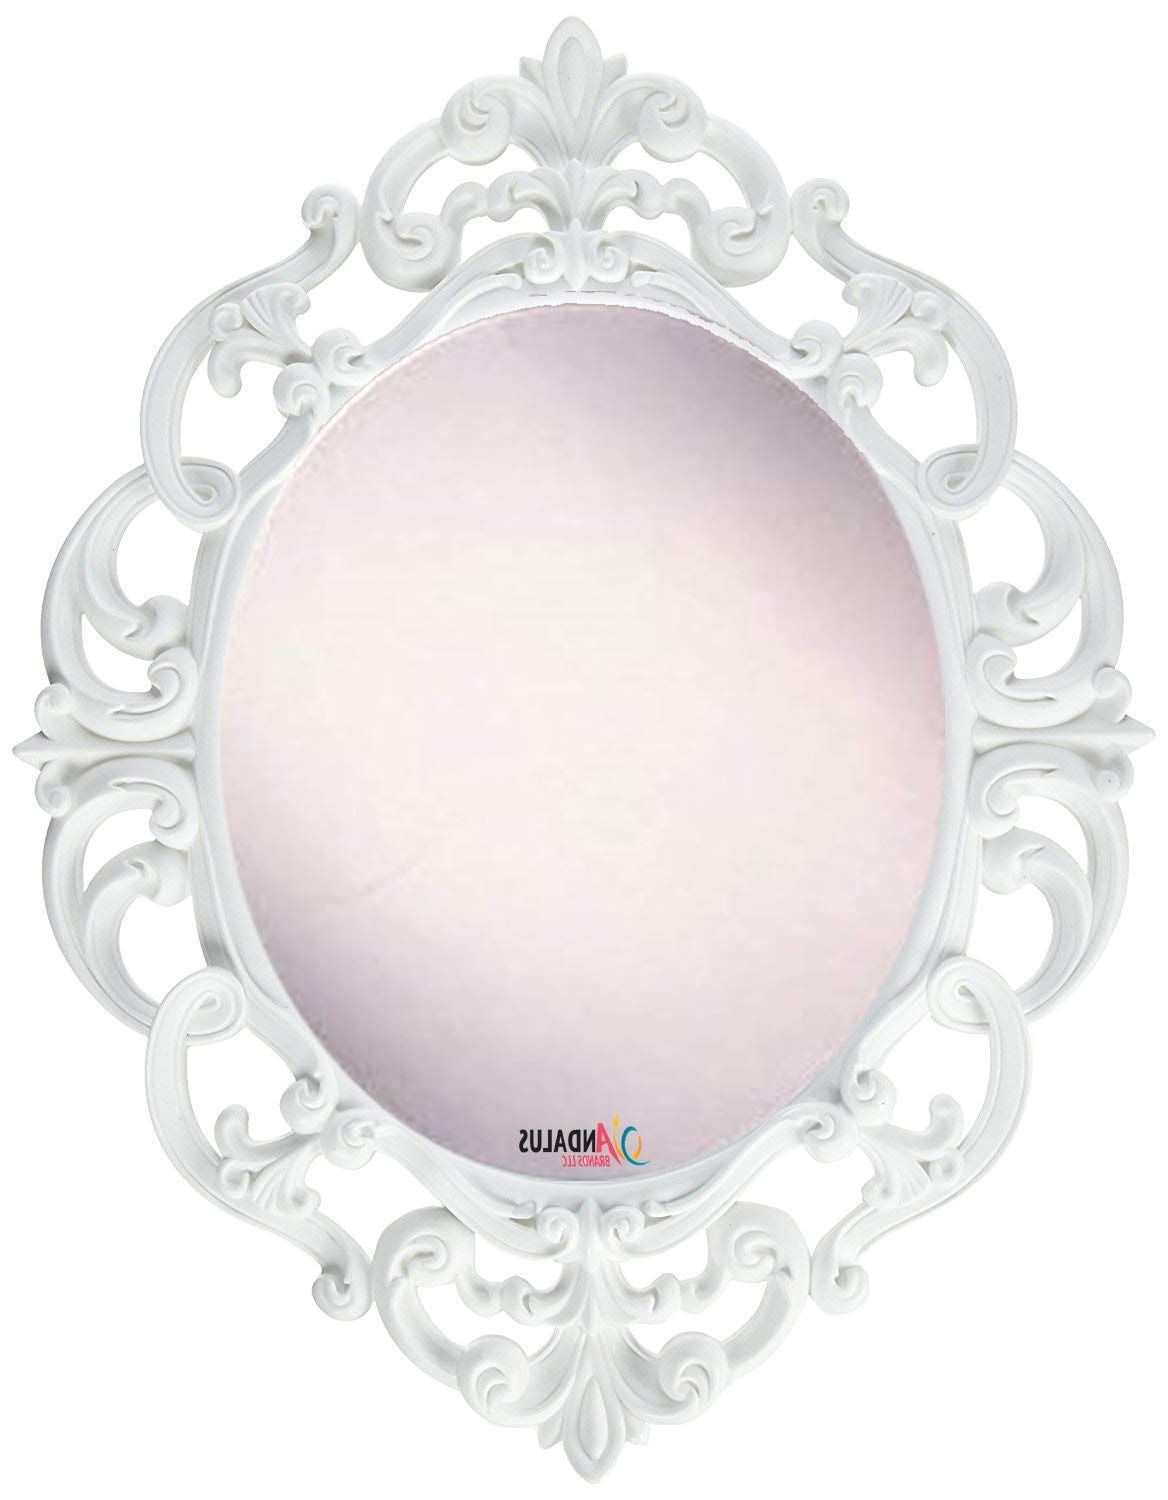 Lightweight Wall Mirrors For Most Current Andalus Small White Oval Vintage Wall Mirror, Ornate Frame, (View 4 of 20)